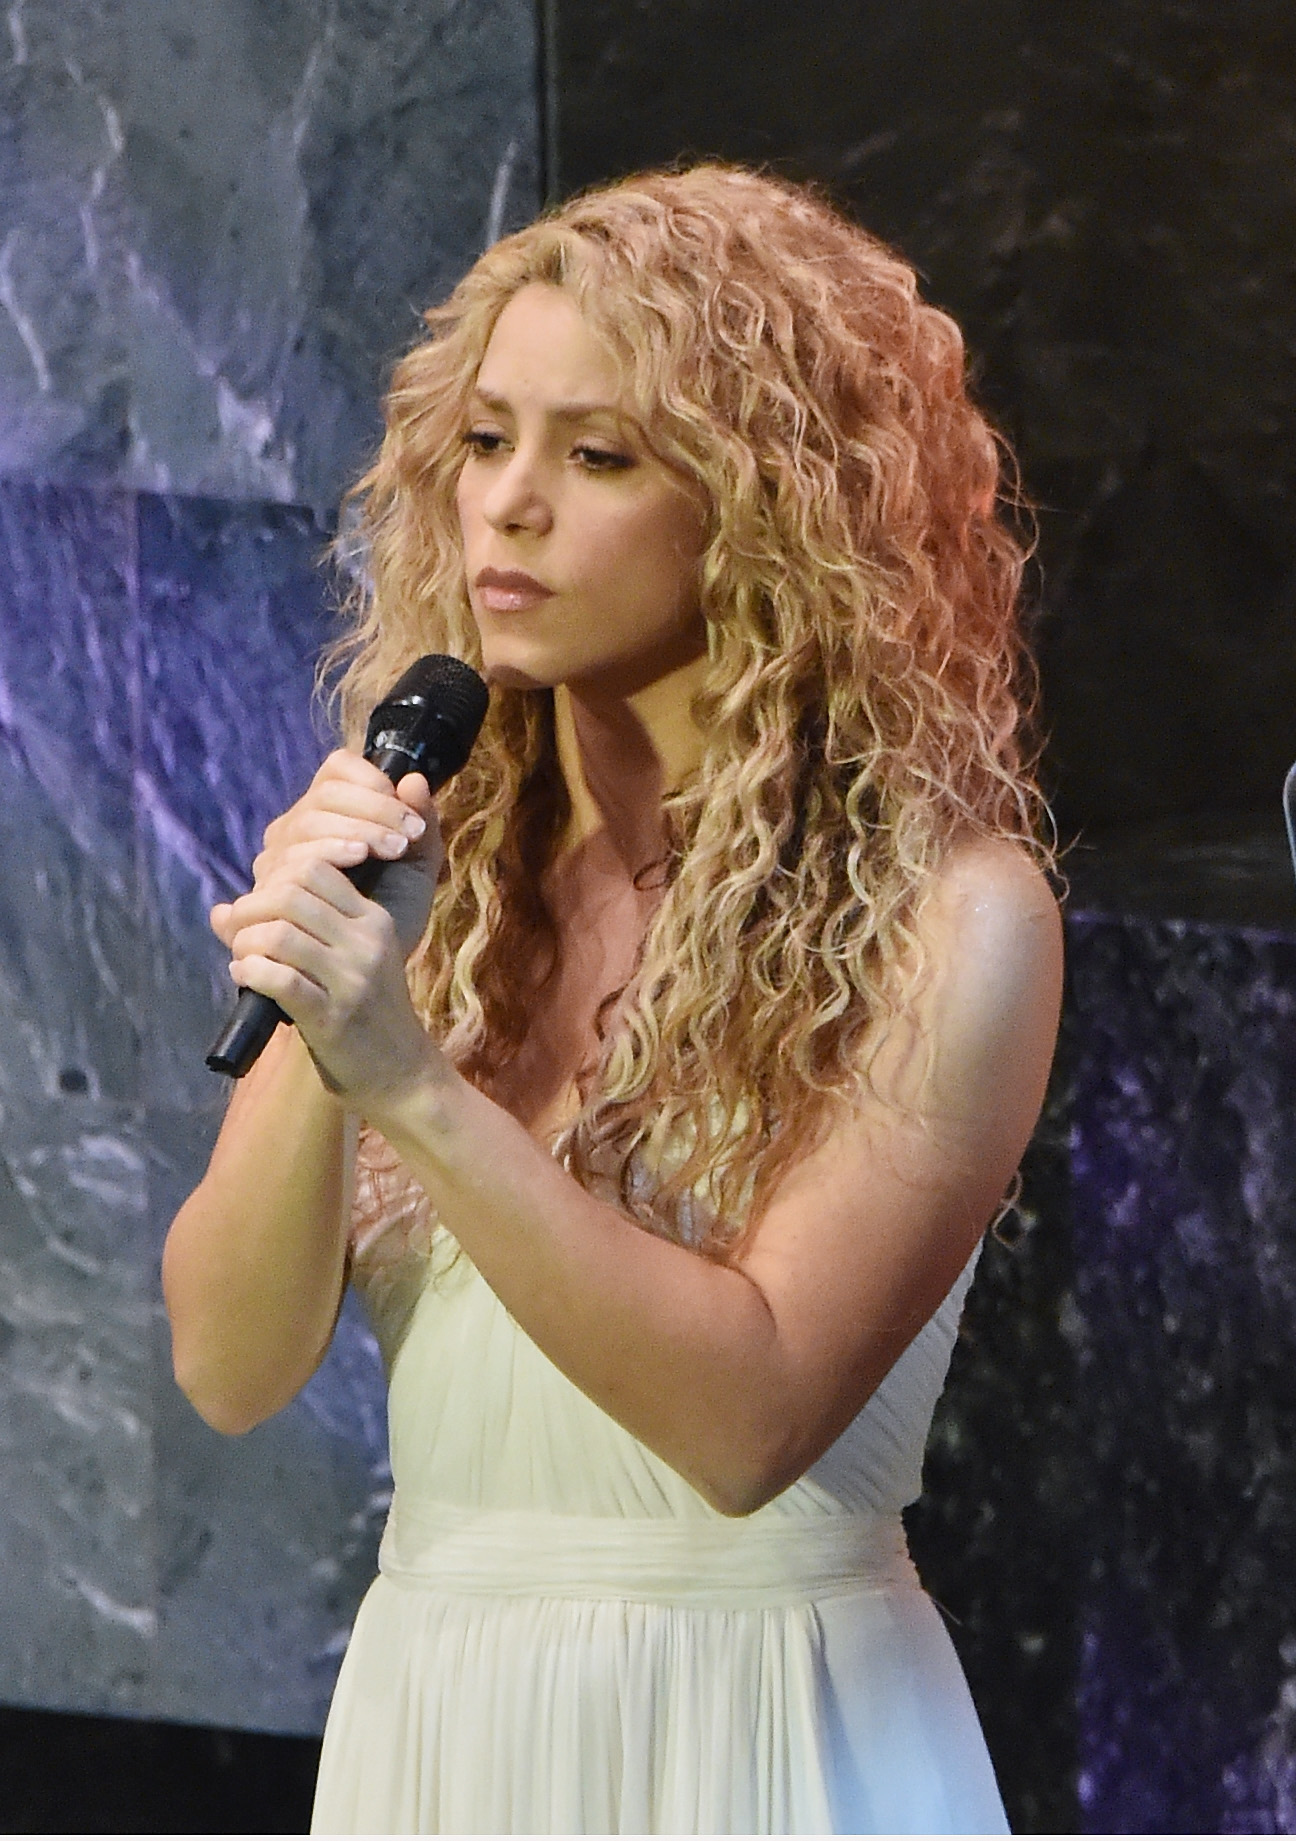 NEW YORK, NY - SEPTEMBER 25:  Singer Shakira performs at The United Nations General Assembly on September 25, 2015 in New York City.  (Photo by Mike Coppola/FilmMagic)